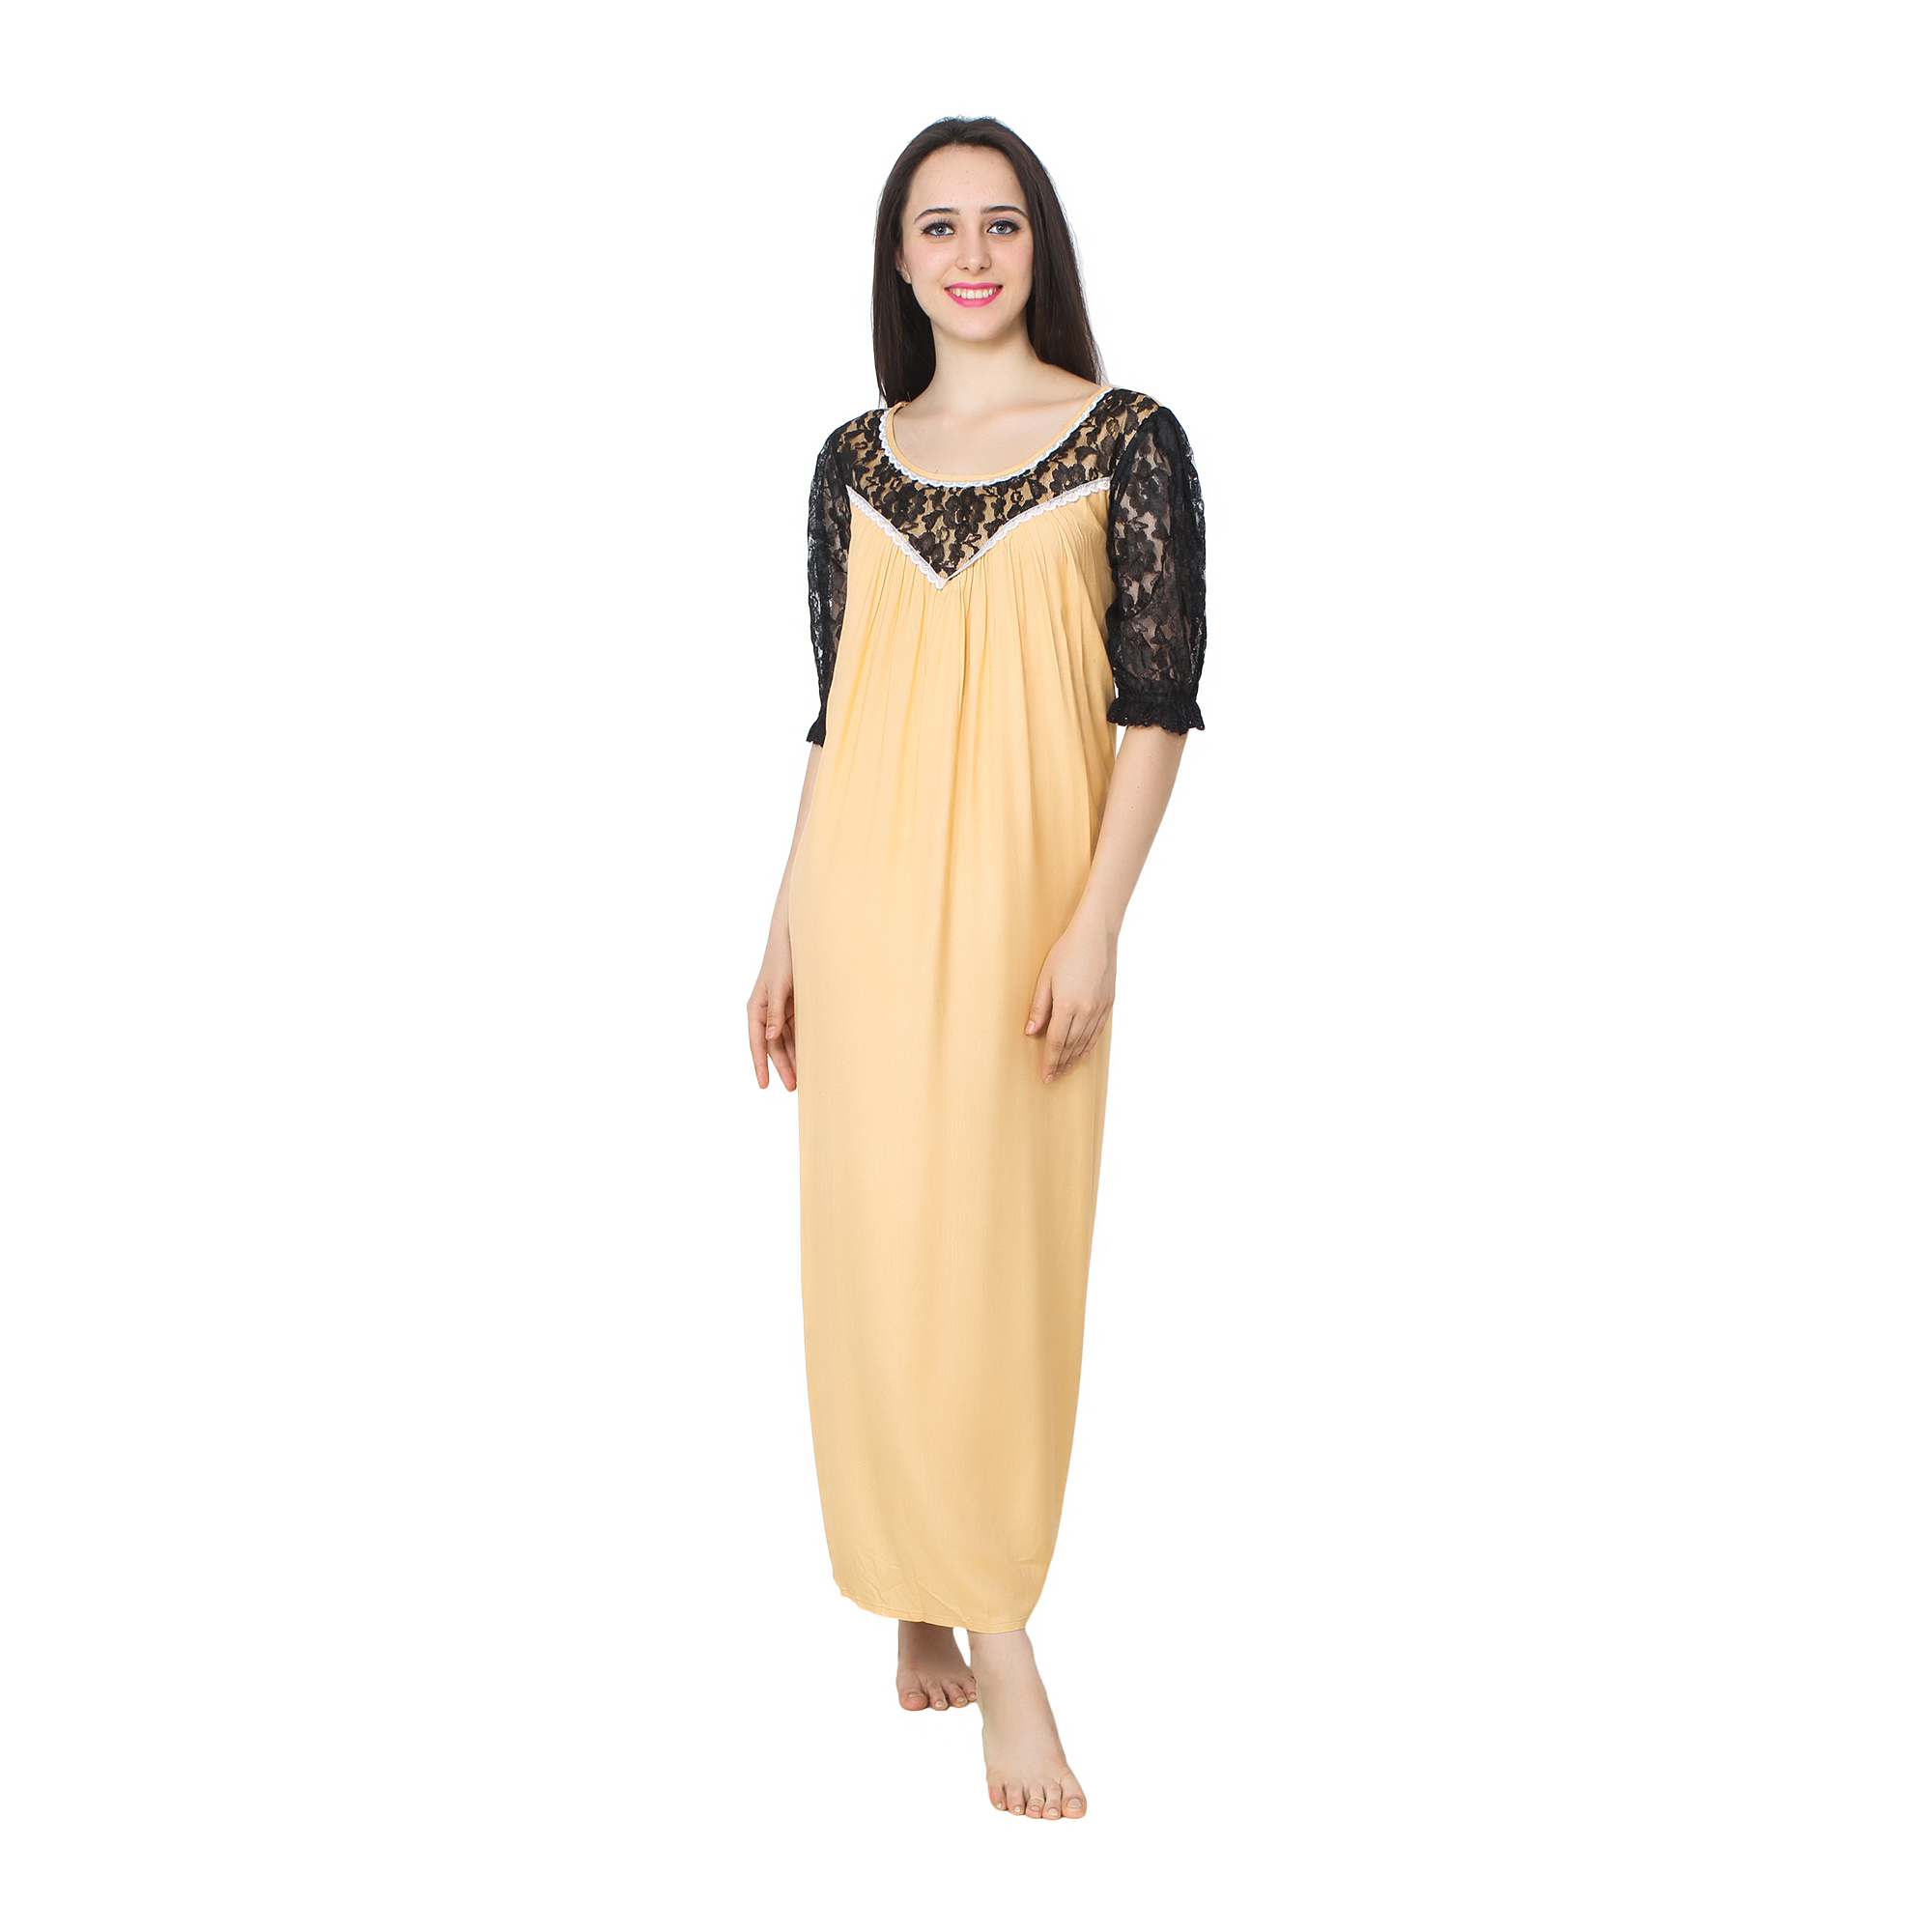 Lace Work Neck and Sleeve A-Line Maxi Nighty in Gold